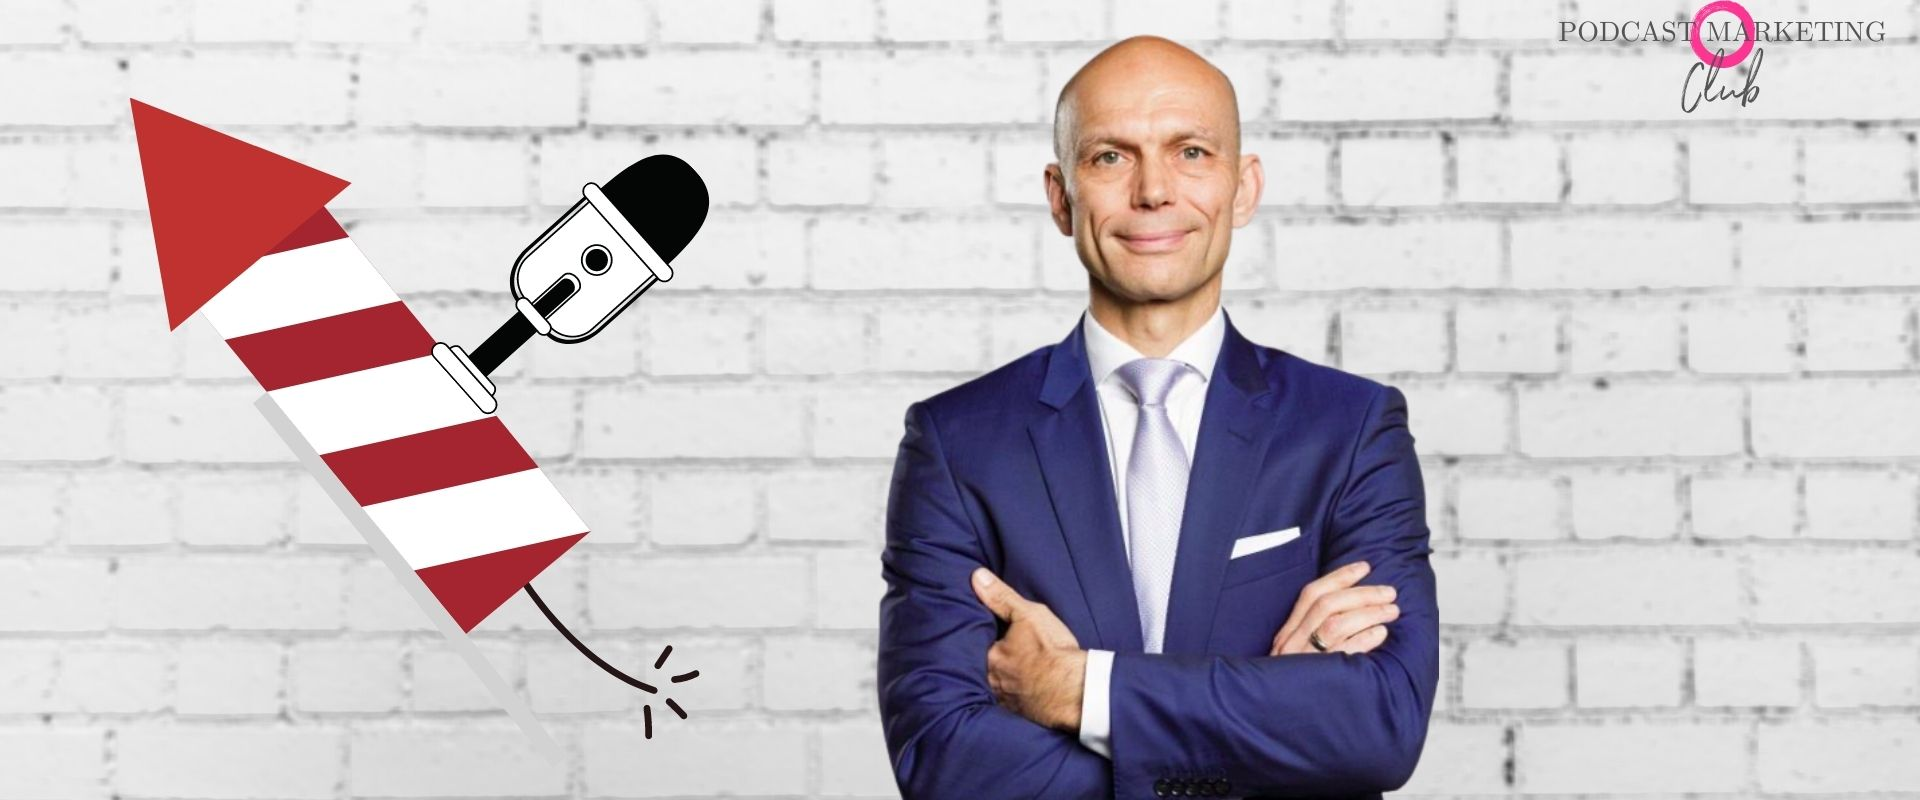 Personal Branding Podcast Christopher Funk